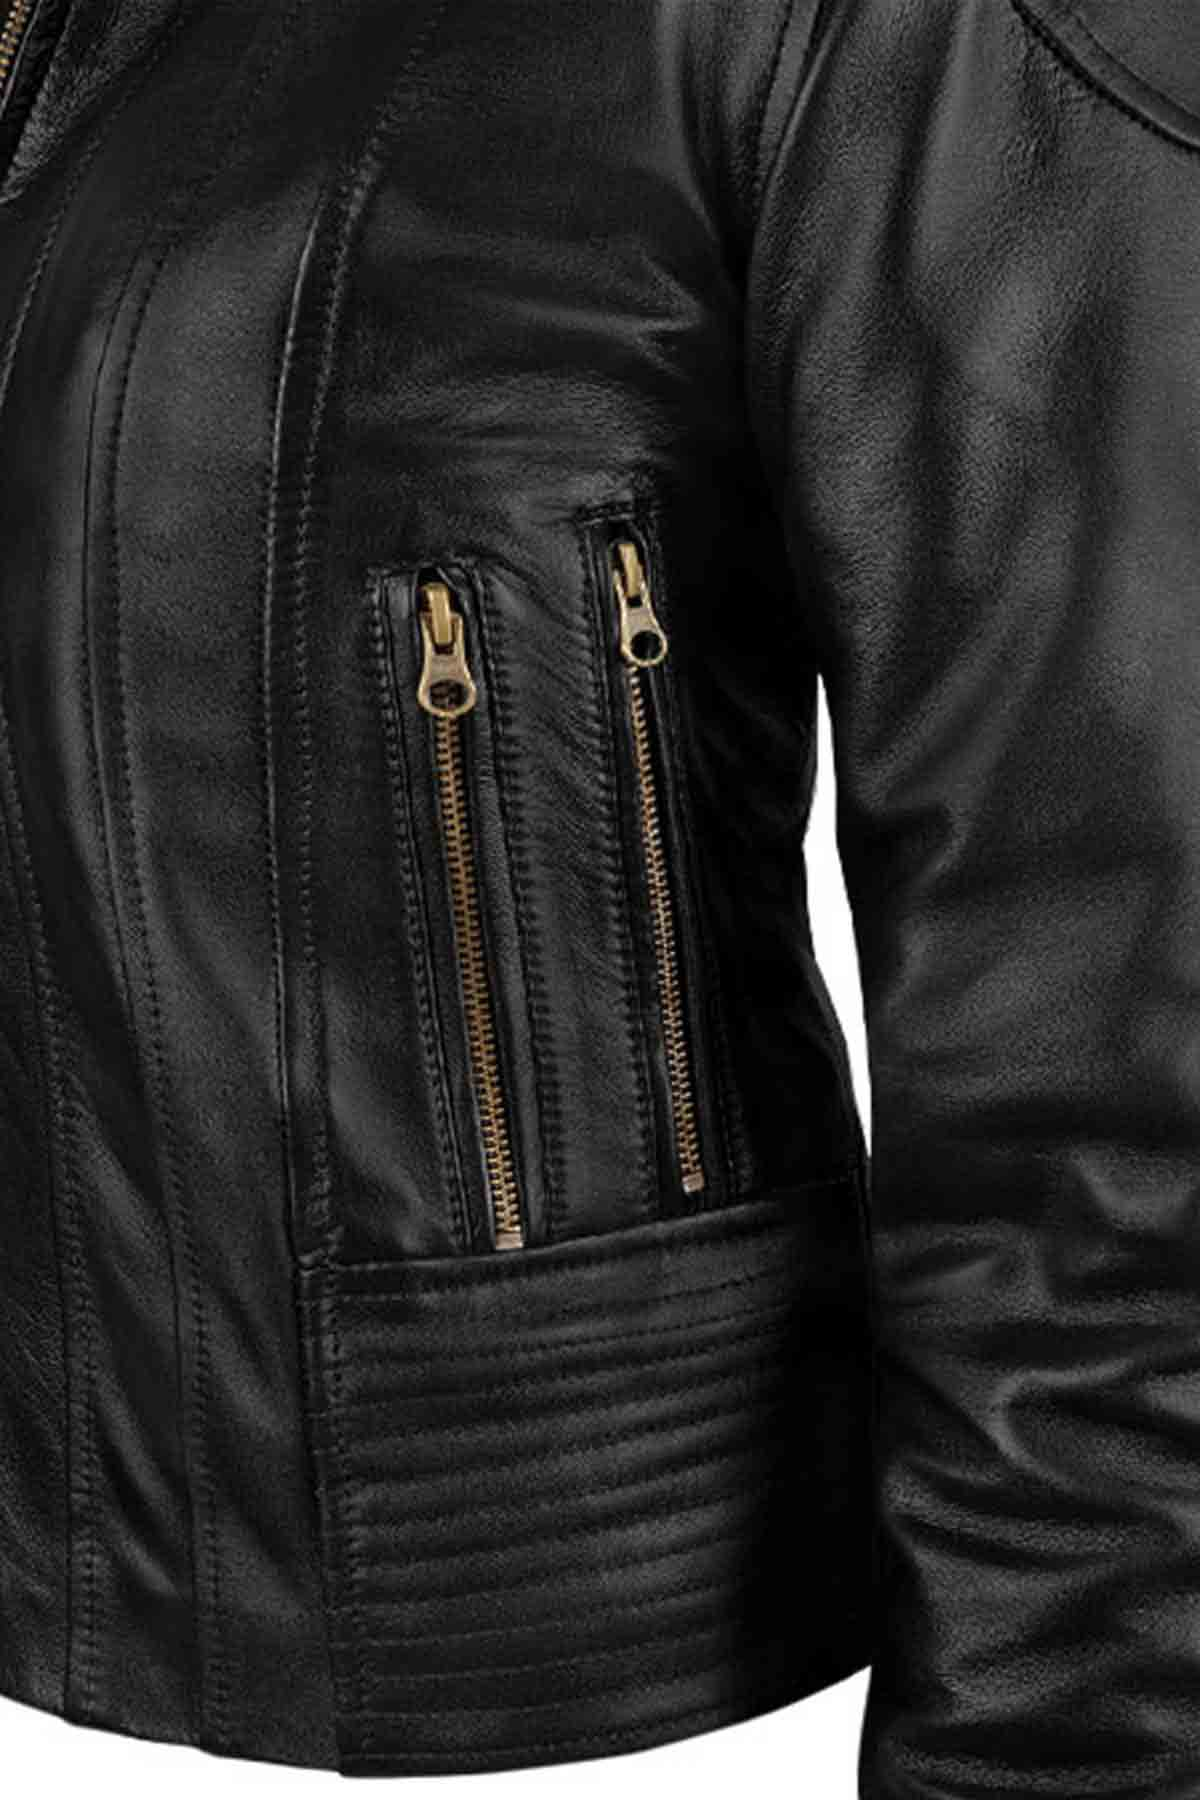 Transformers 2 Leather Jacket